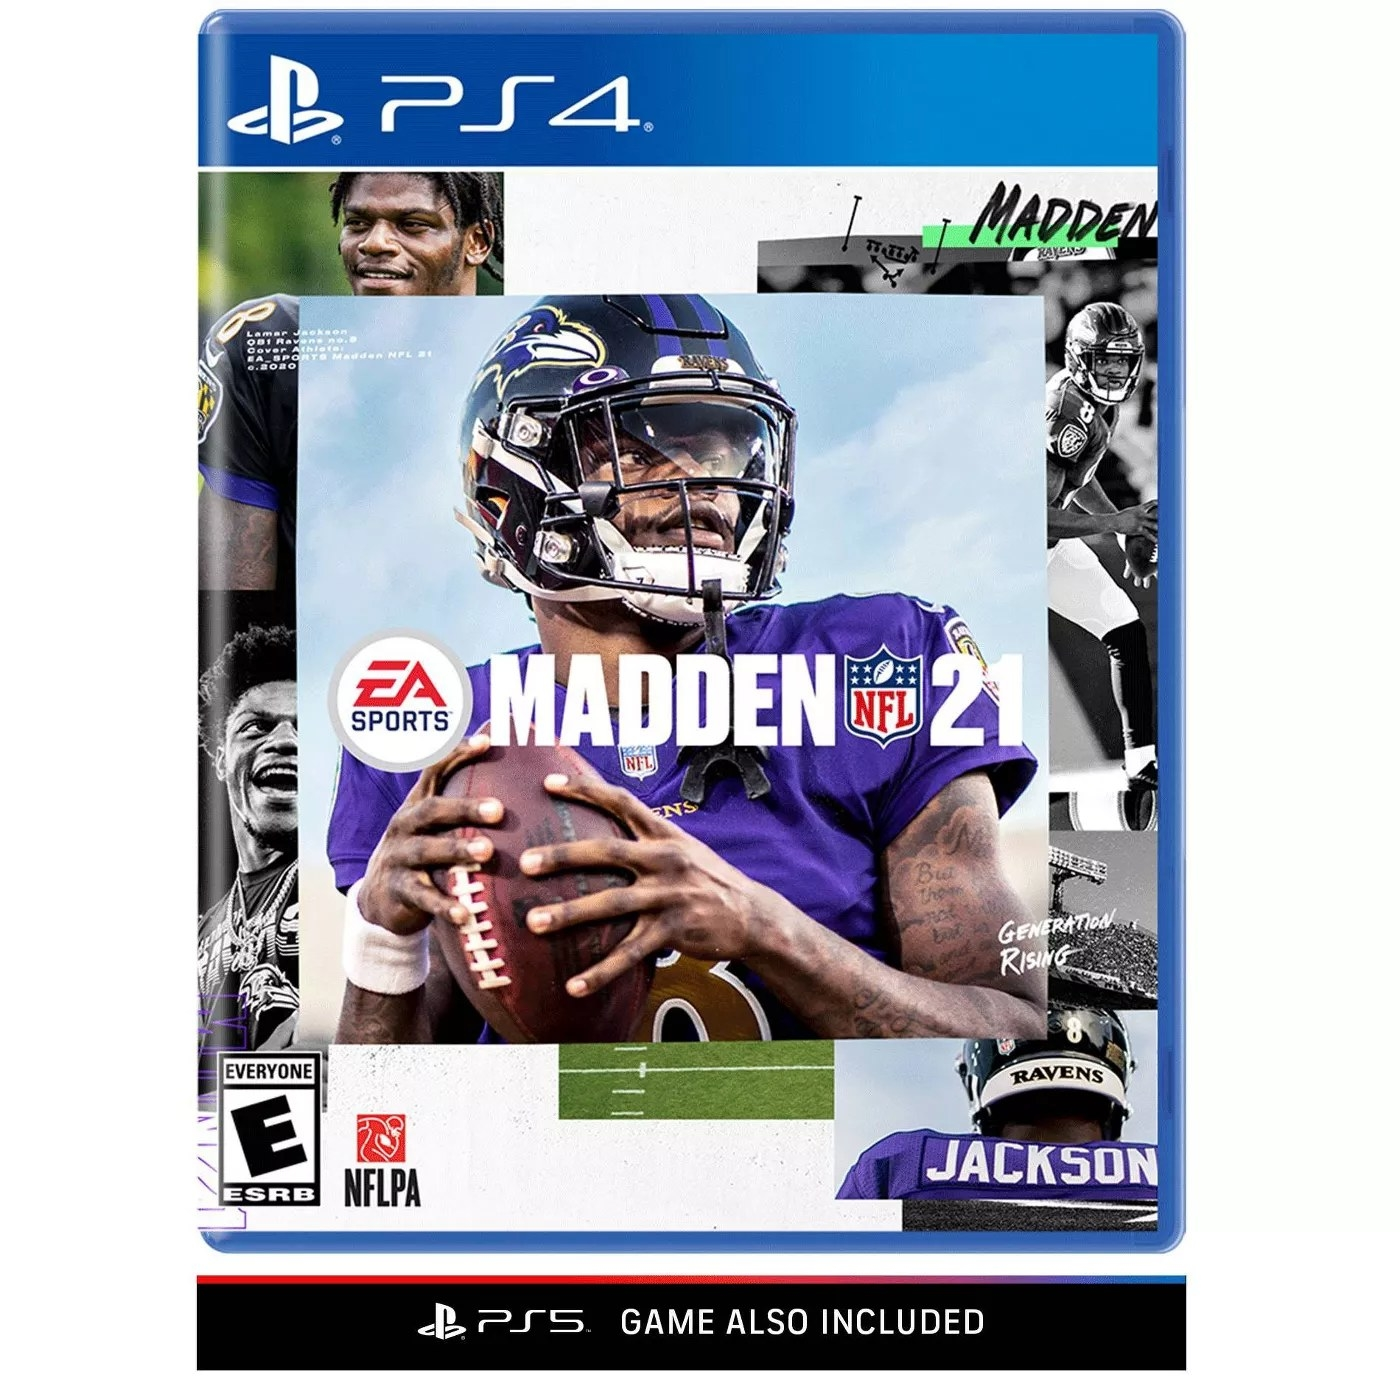 The PS4 EA Sports Madden NFL 21 video game with the PS5 game included